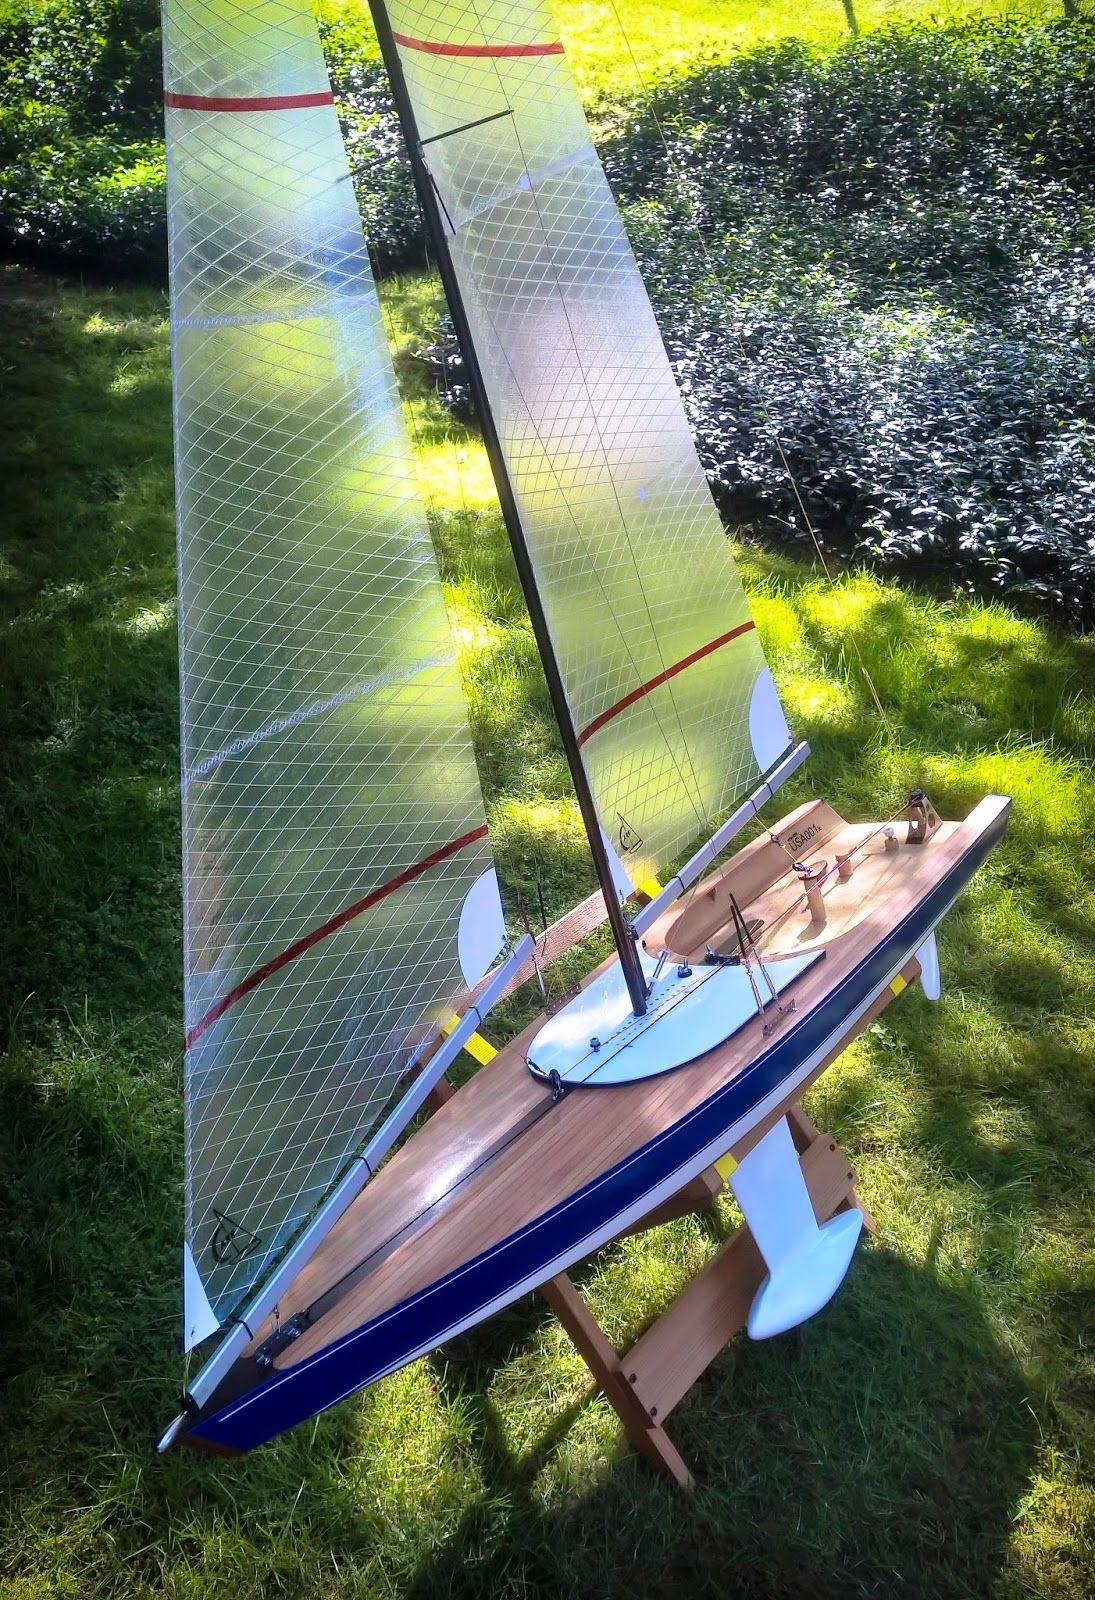 Salish 475 Rc Sailboat Star 45 Rc Sailboat Model Sailboats Model Sailboat Sailboat